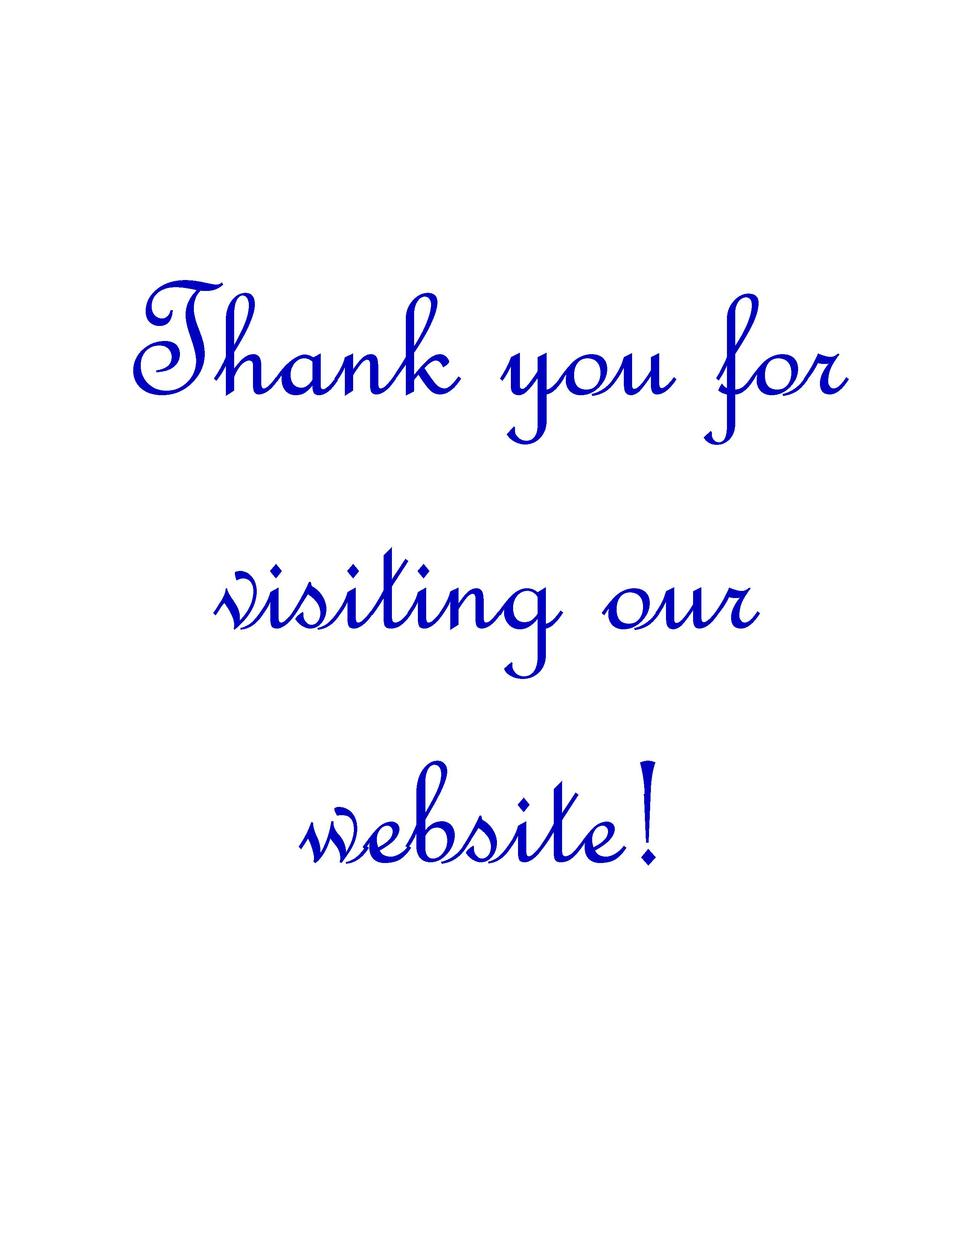 Thank you for visiting our website